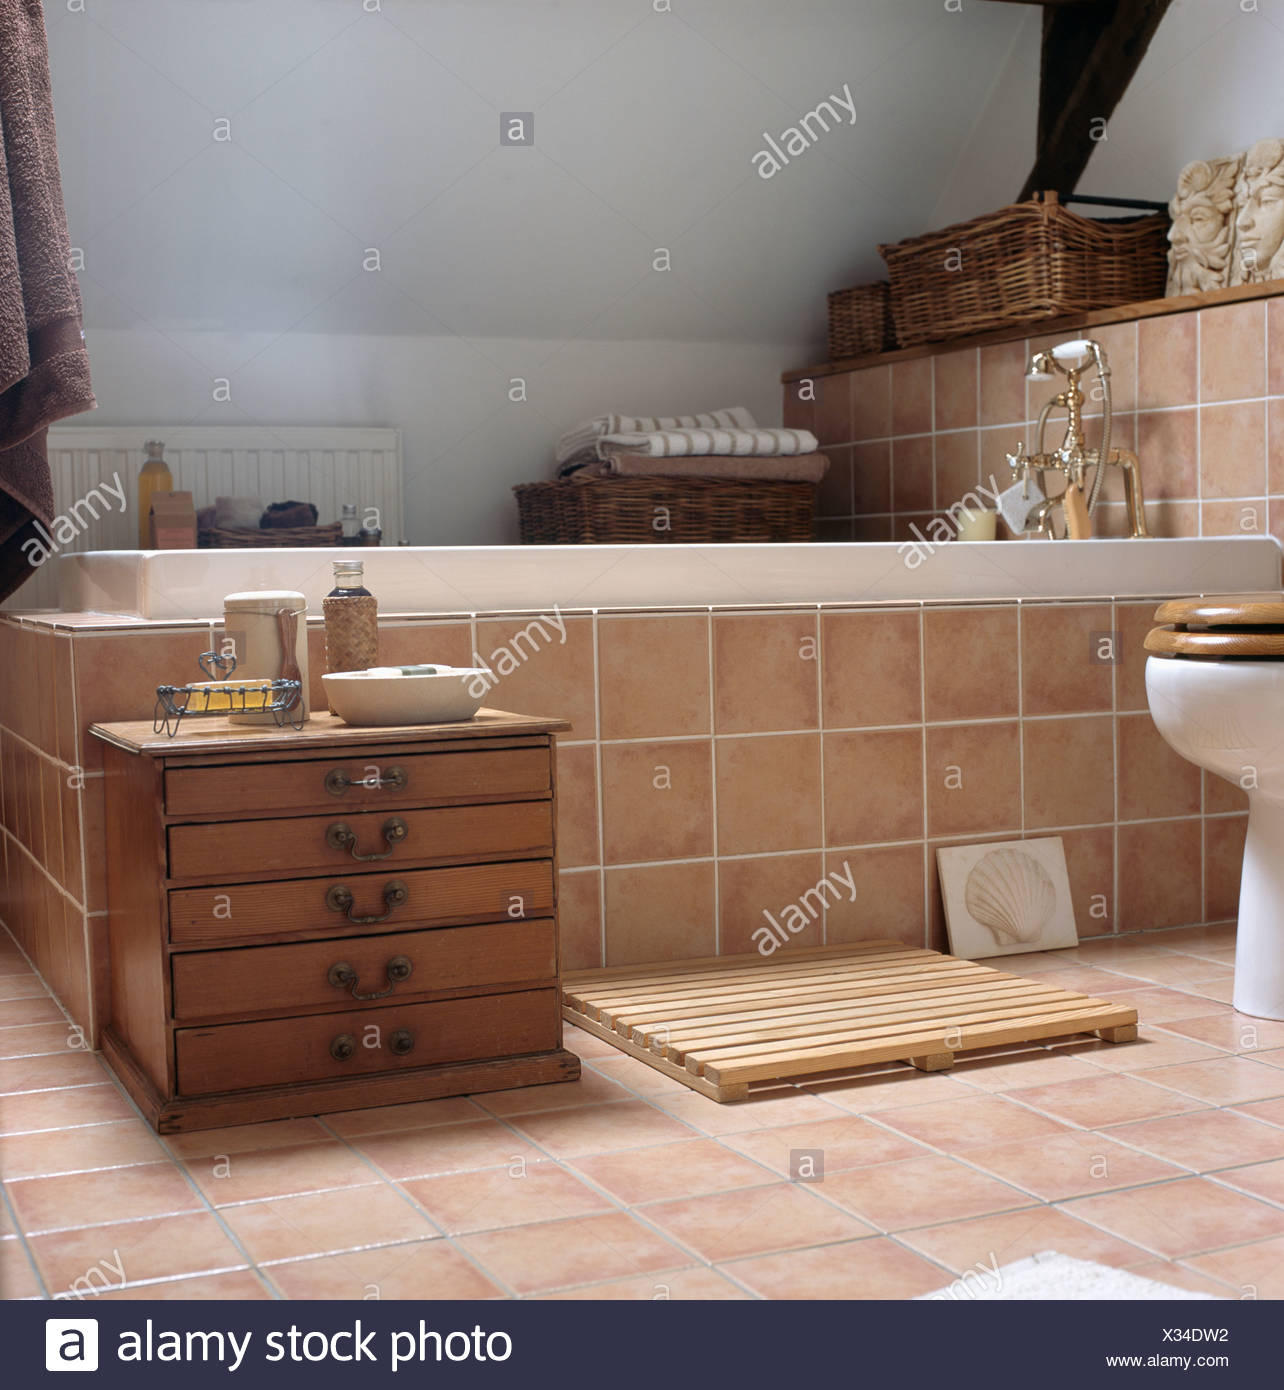 beige tiled bath surround and floor in white attic bathroom with